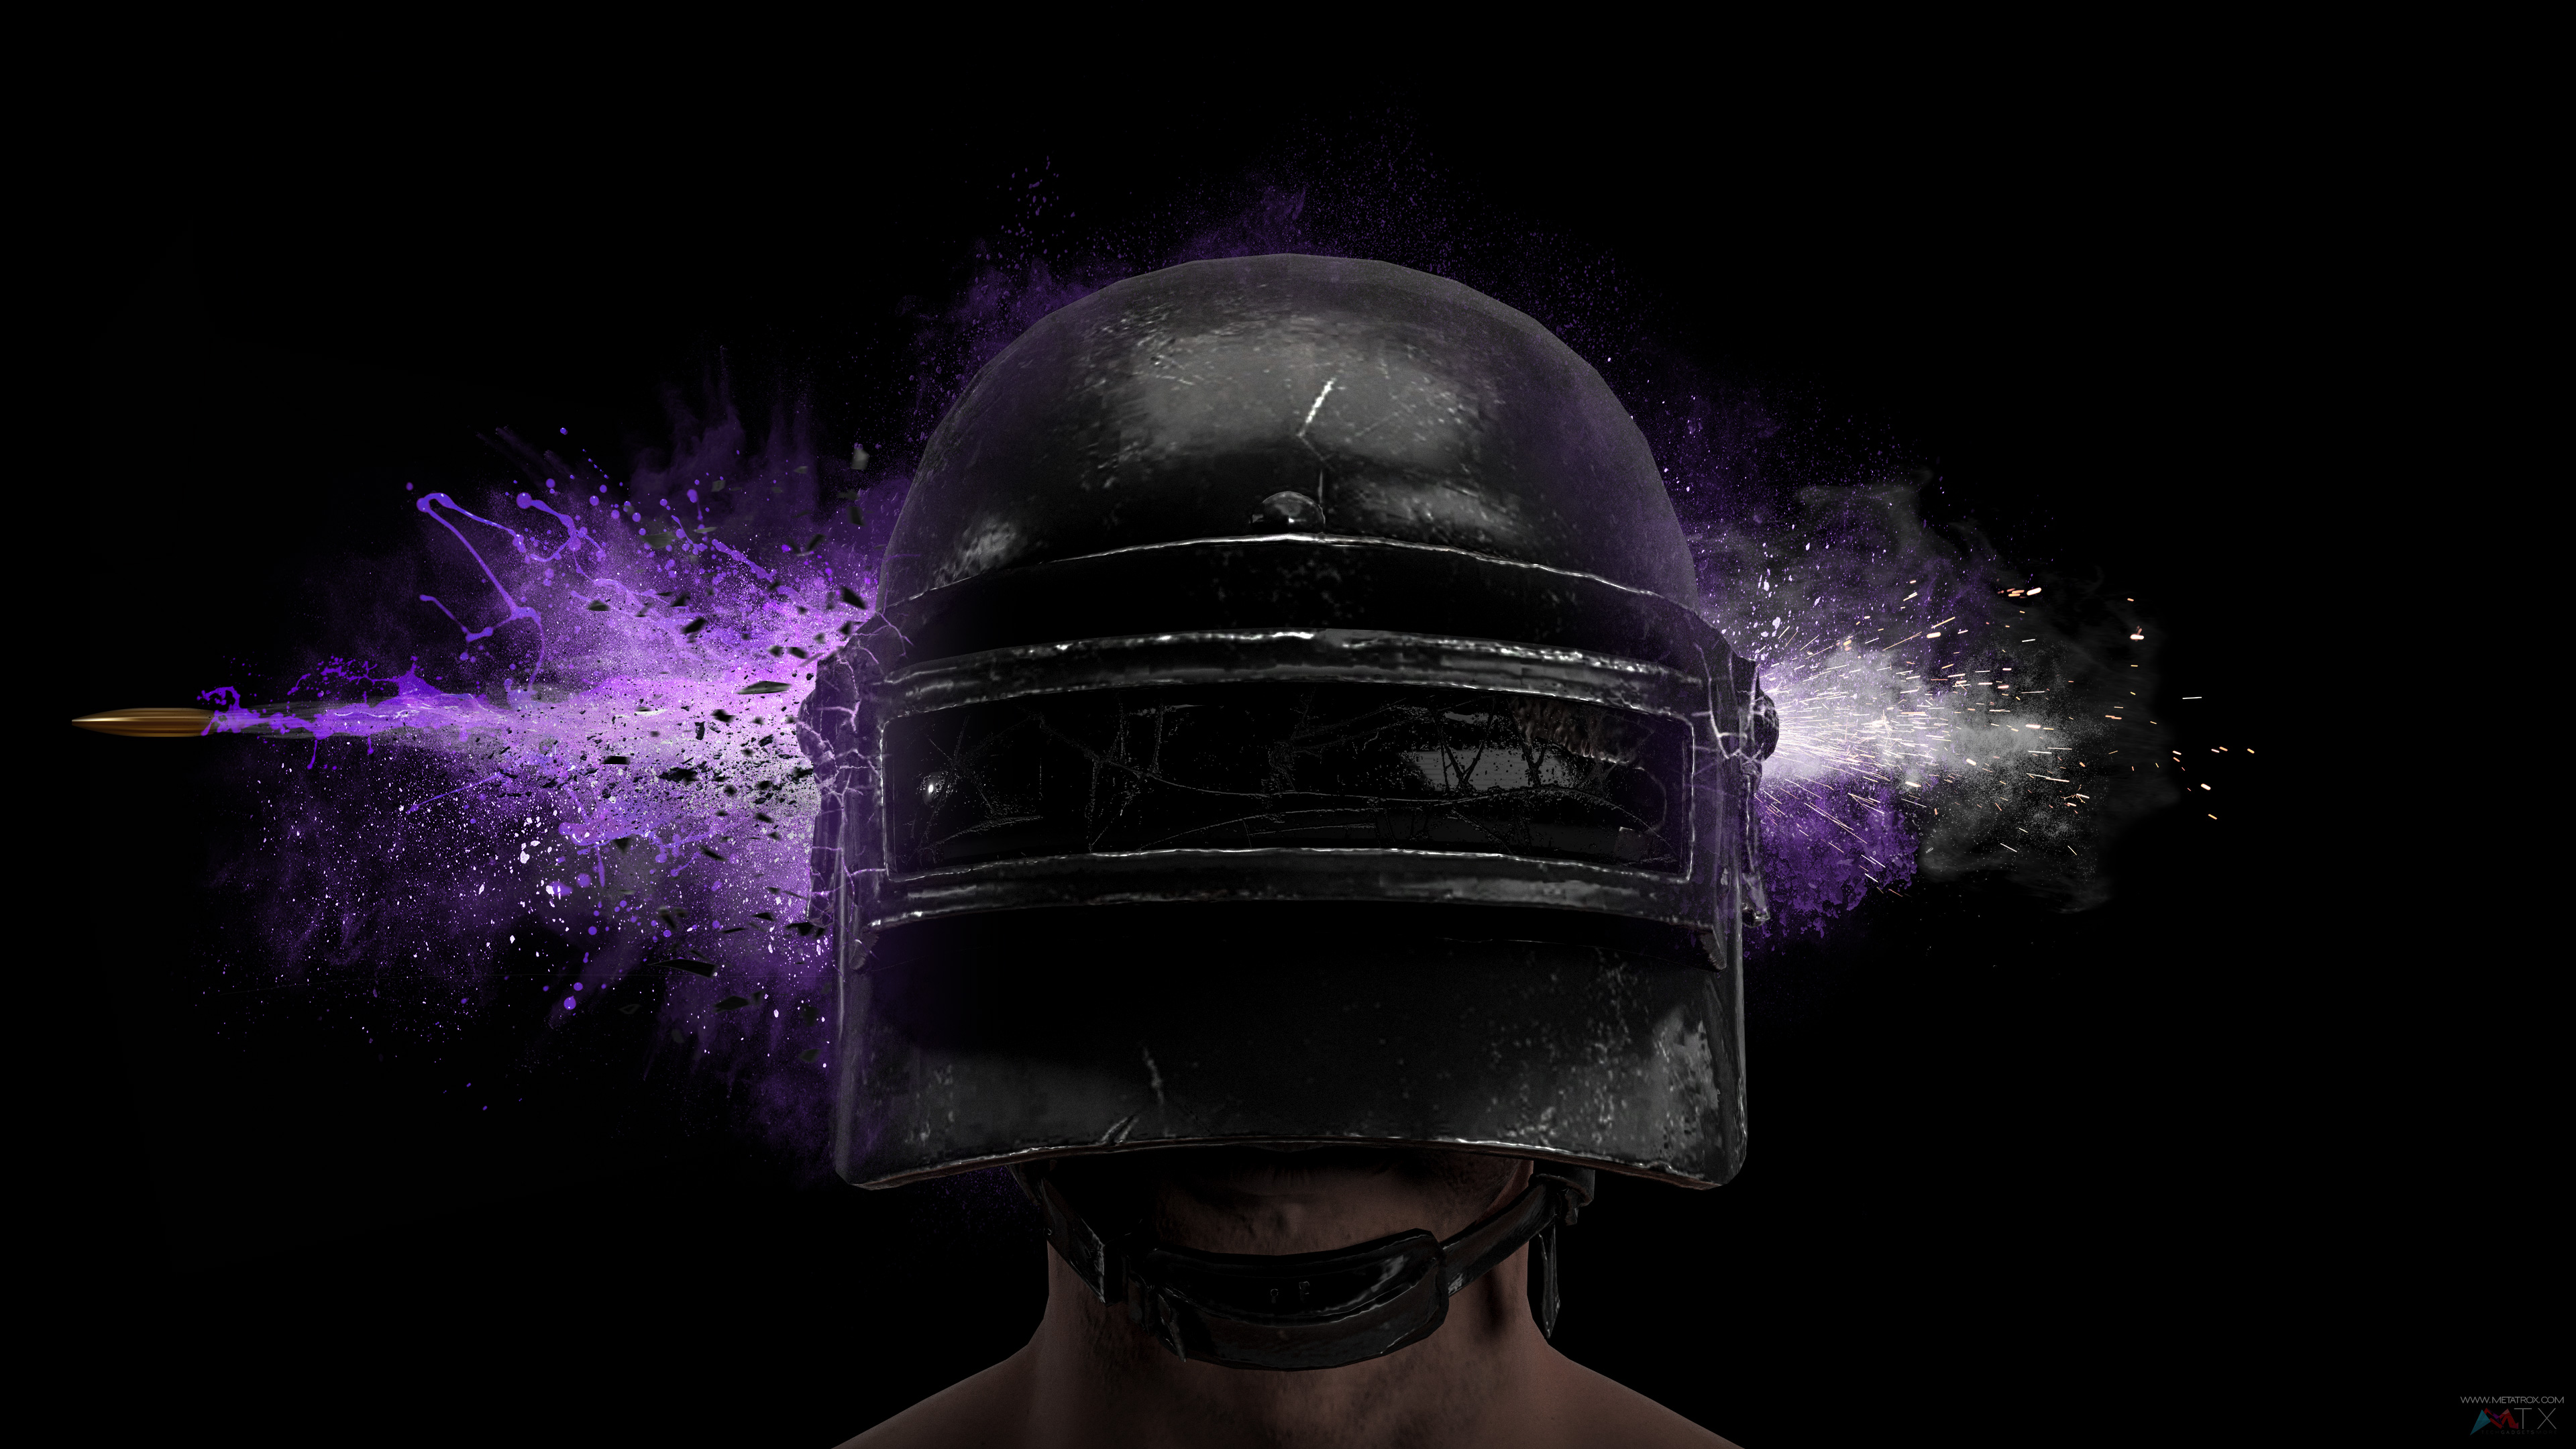 Pubg Mobile Helmet Wallpaper Pubg Pubgwallpapers: 3840x2160 PUBG Game Helmet Guy 4k 4k HD 4k Wallpapers